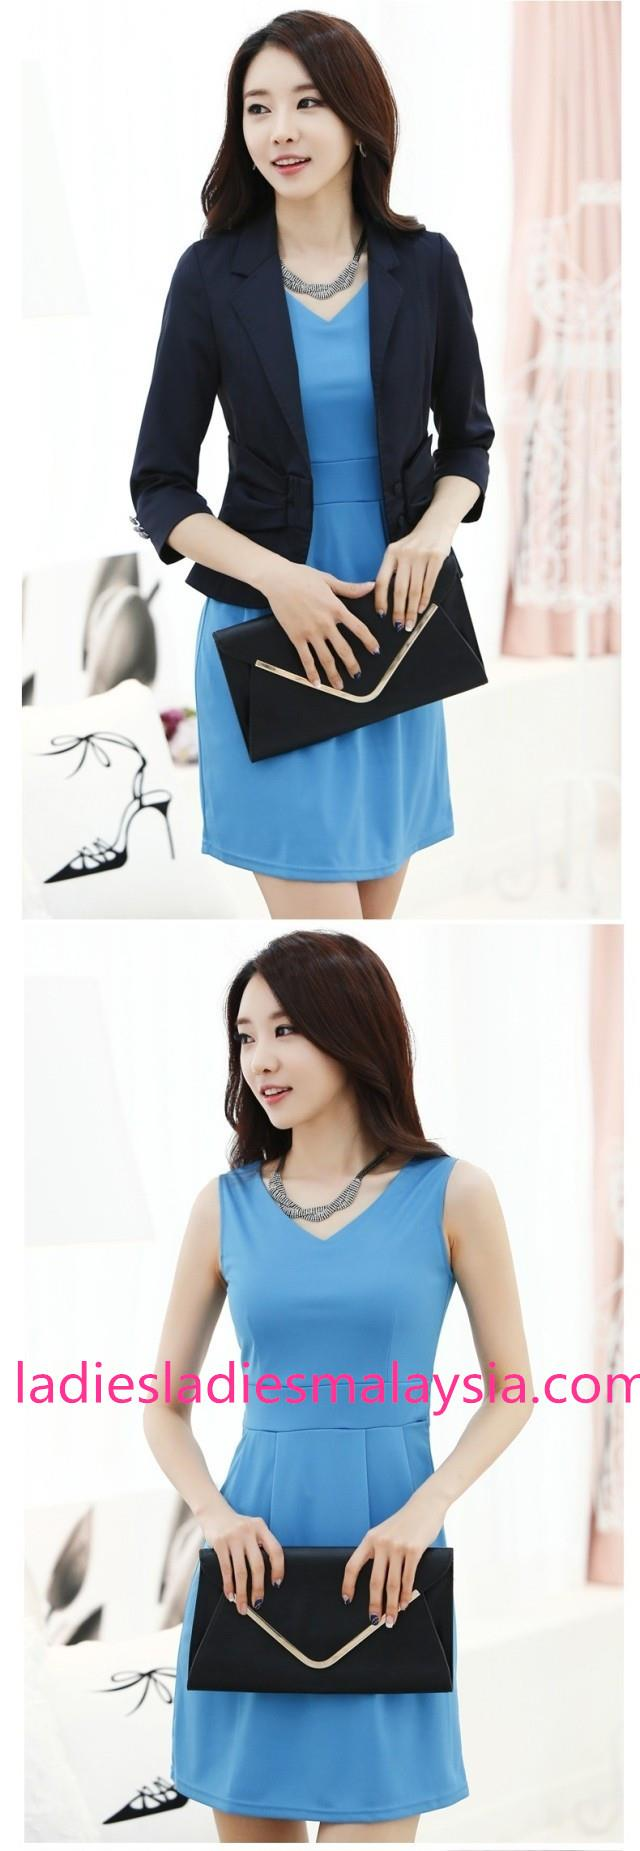 Elegant casual flare dress plain dress